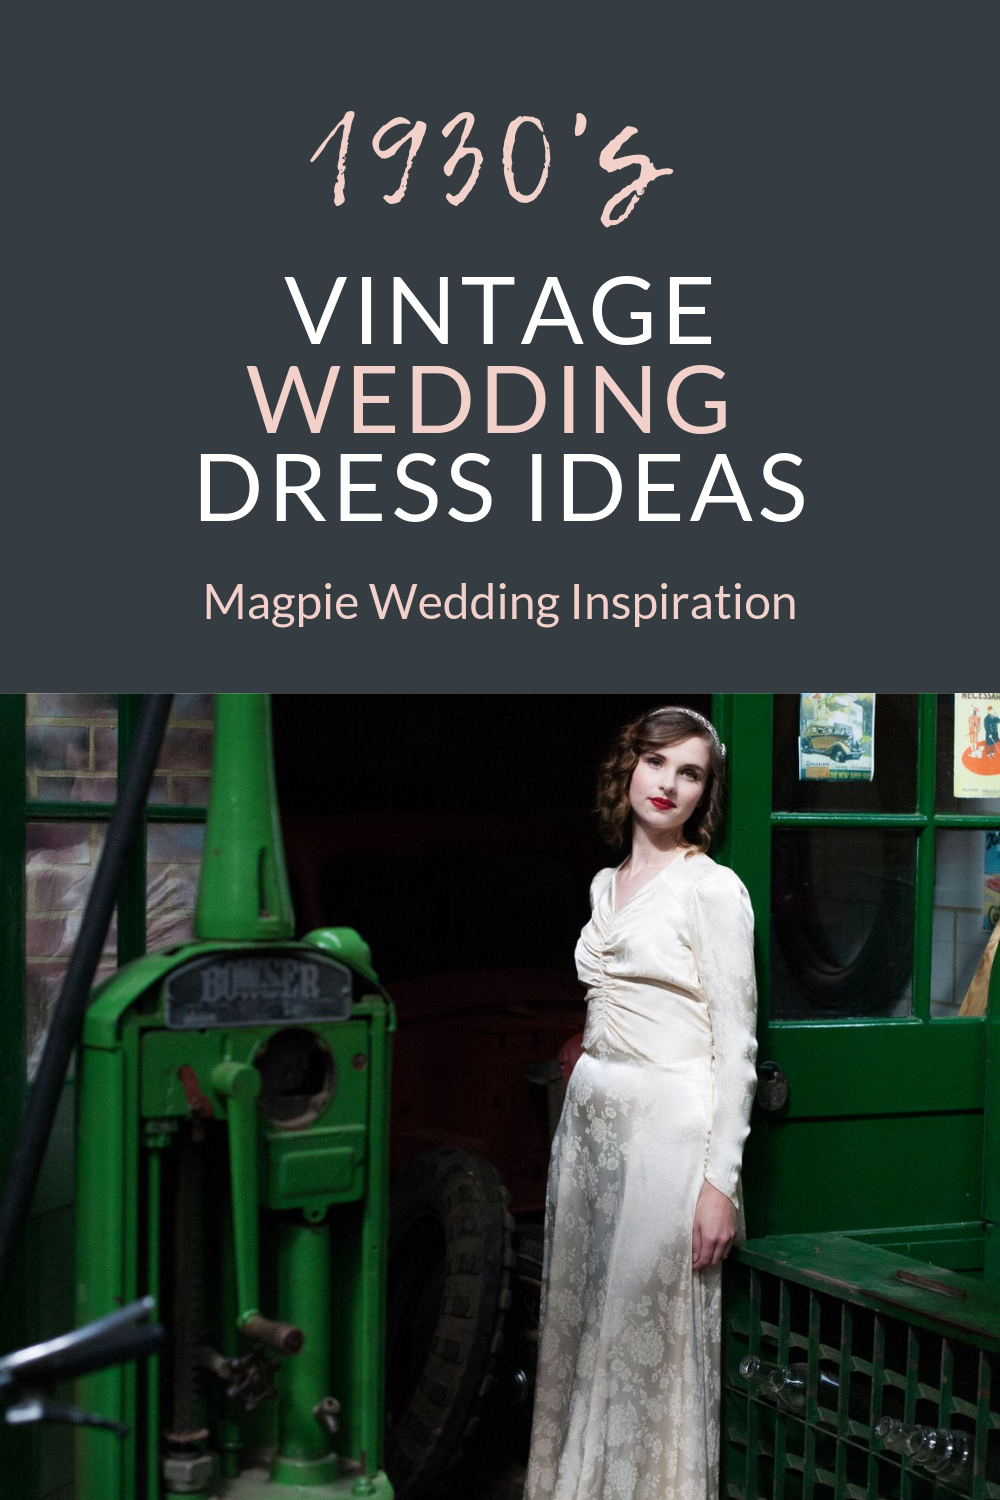 1930's Wedding Inspiration with Vintage Dresses and Feather Capes